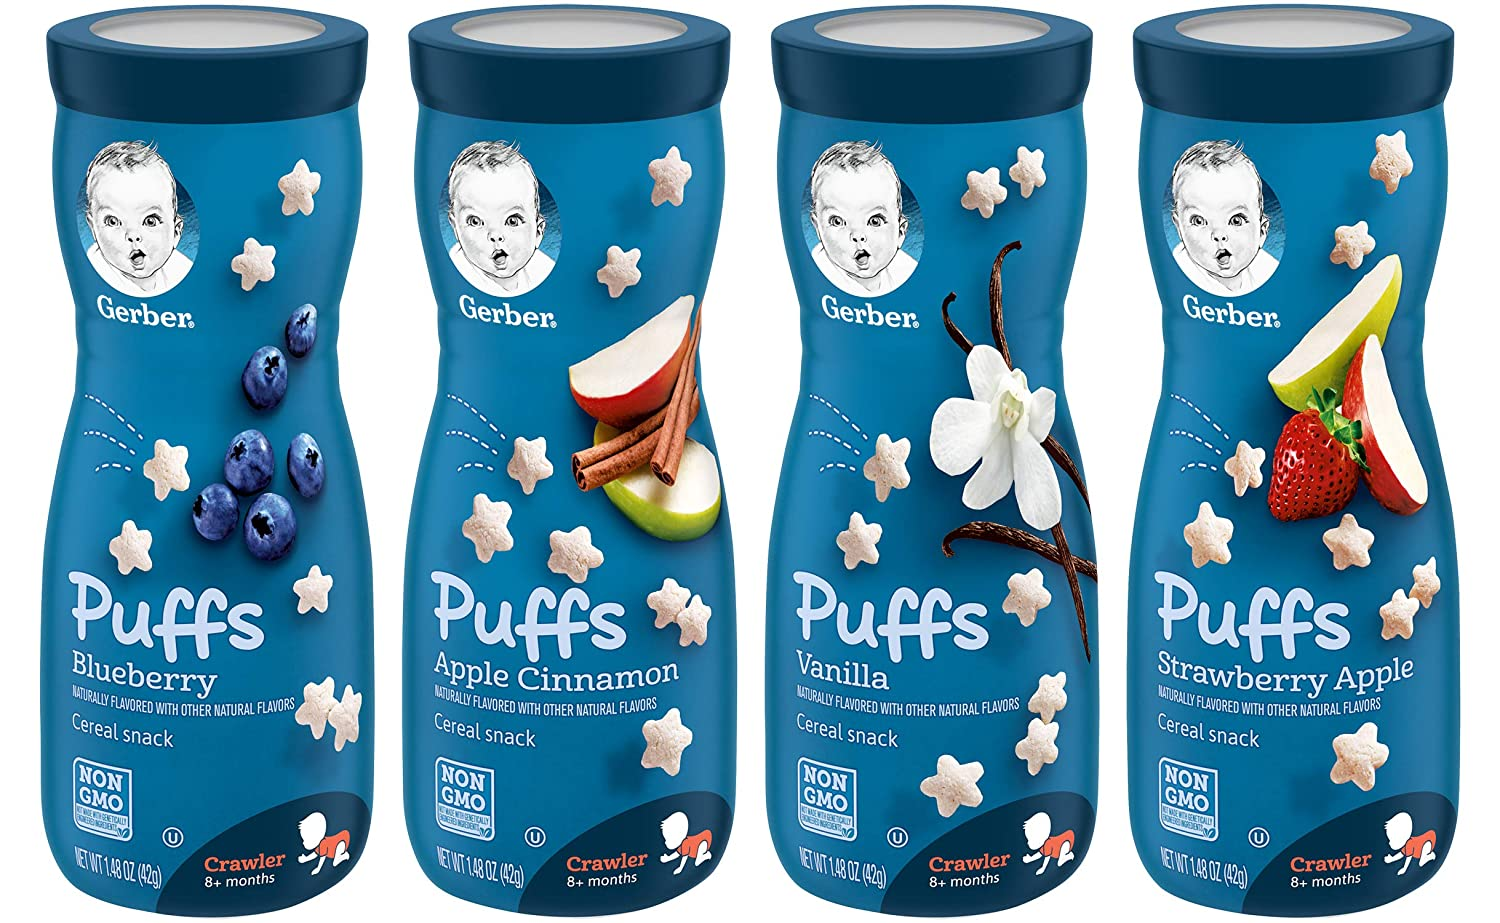 Gerber-Puff-Cereal-Snack-Blueberry